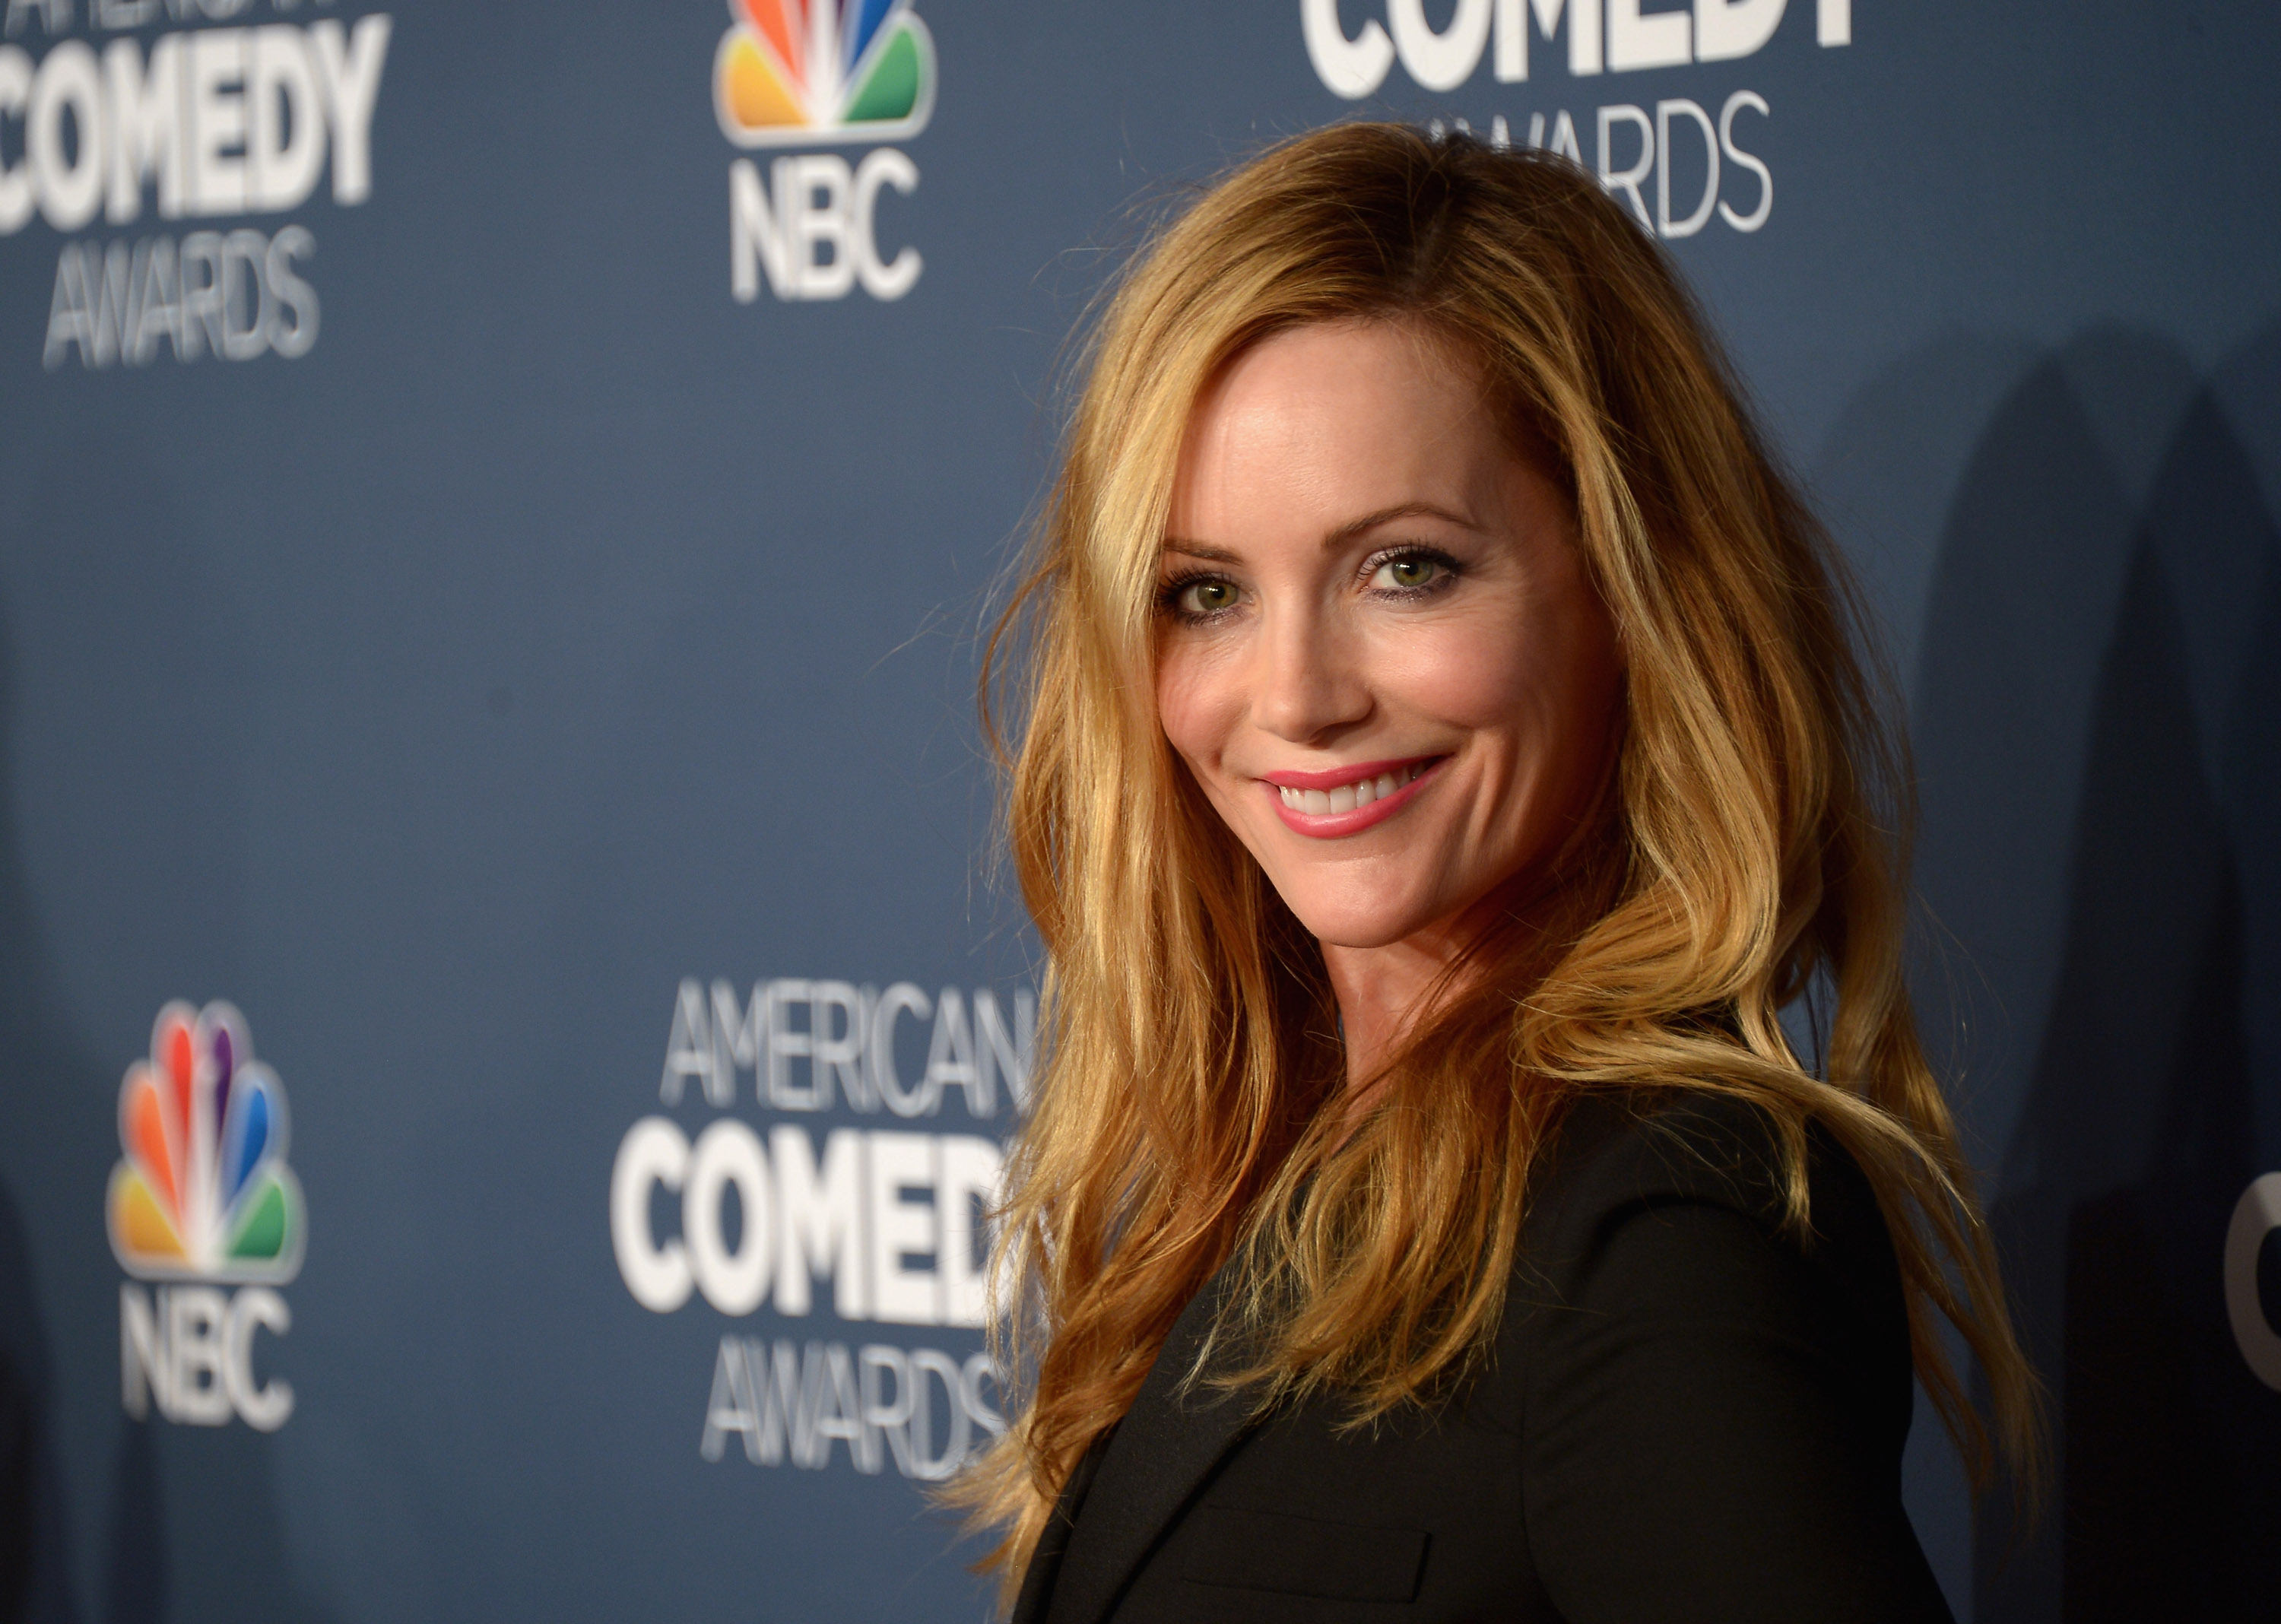 Audrey Griswold Christmas Vacation.Leslie Mann Could Play Audrey Griswold In Vacation Reboot